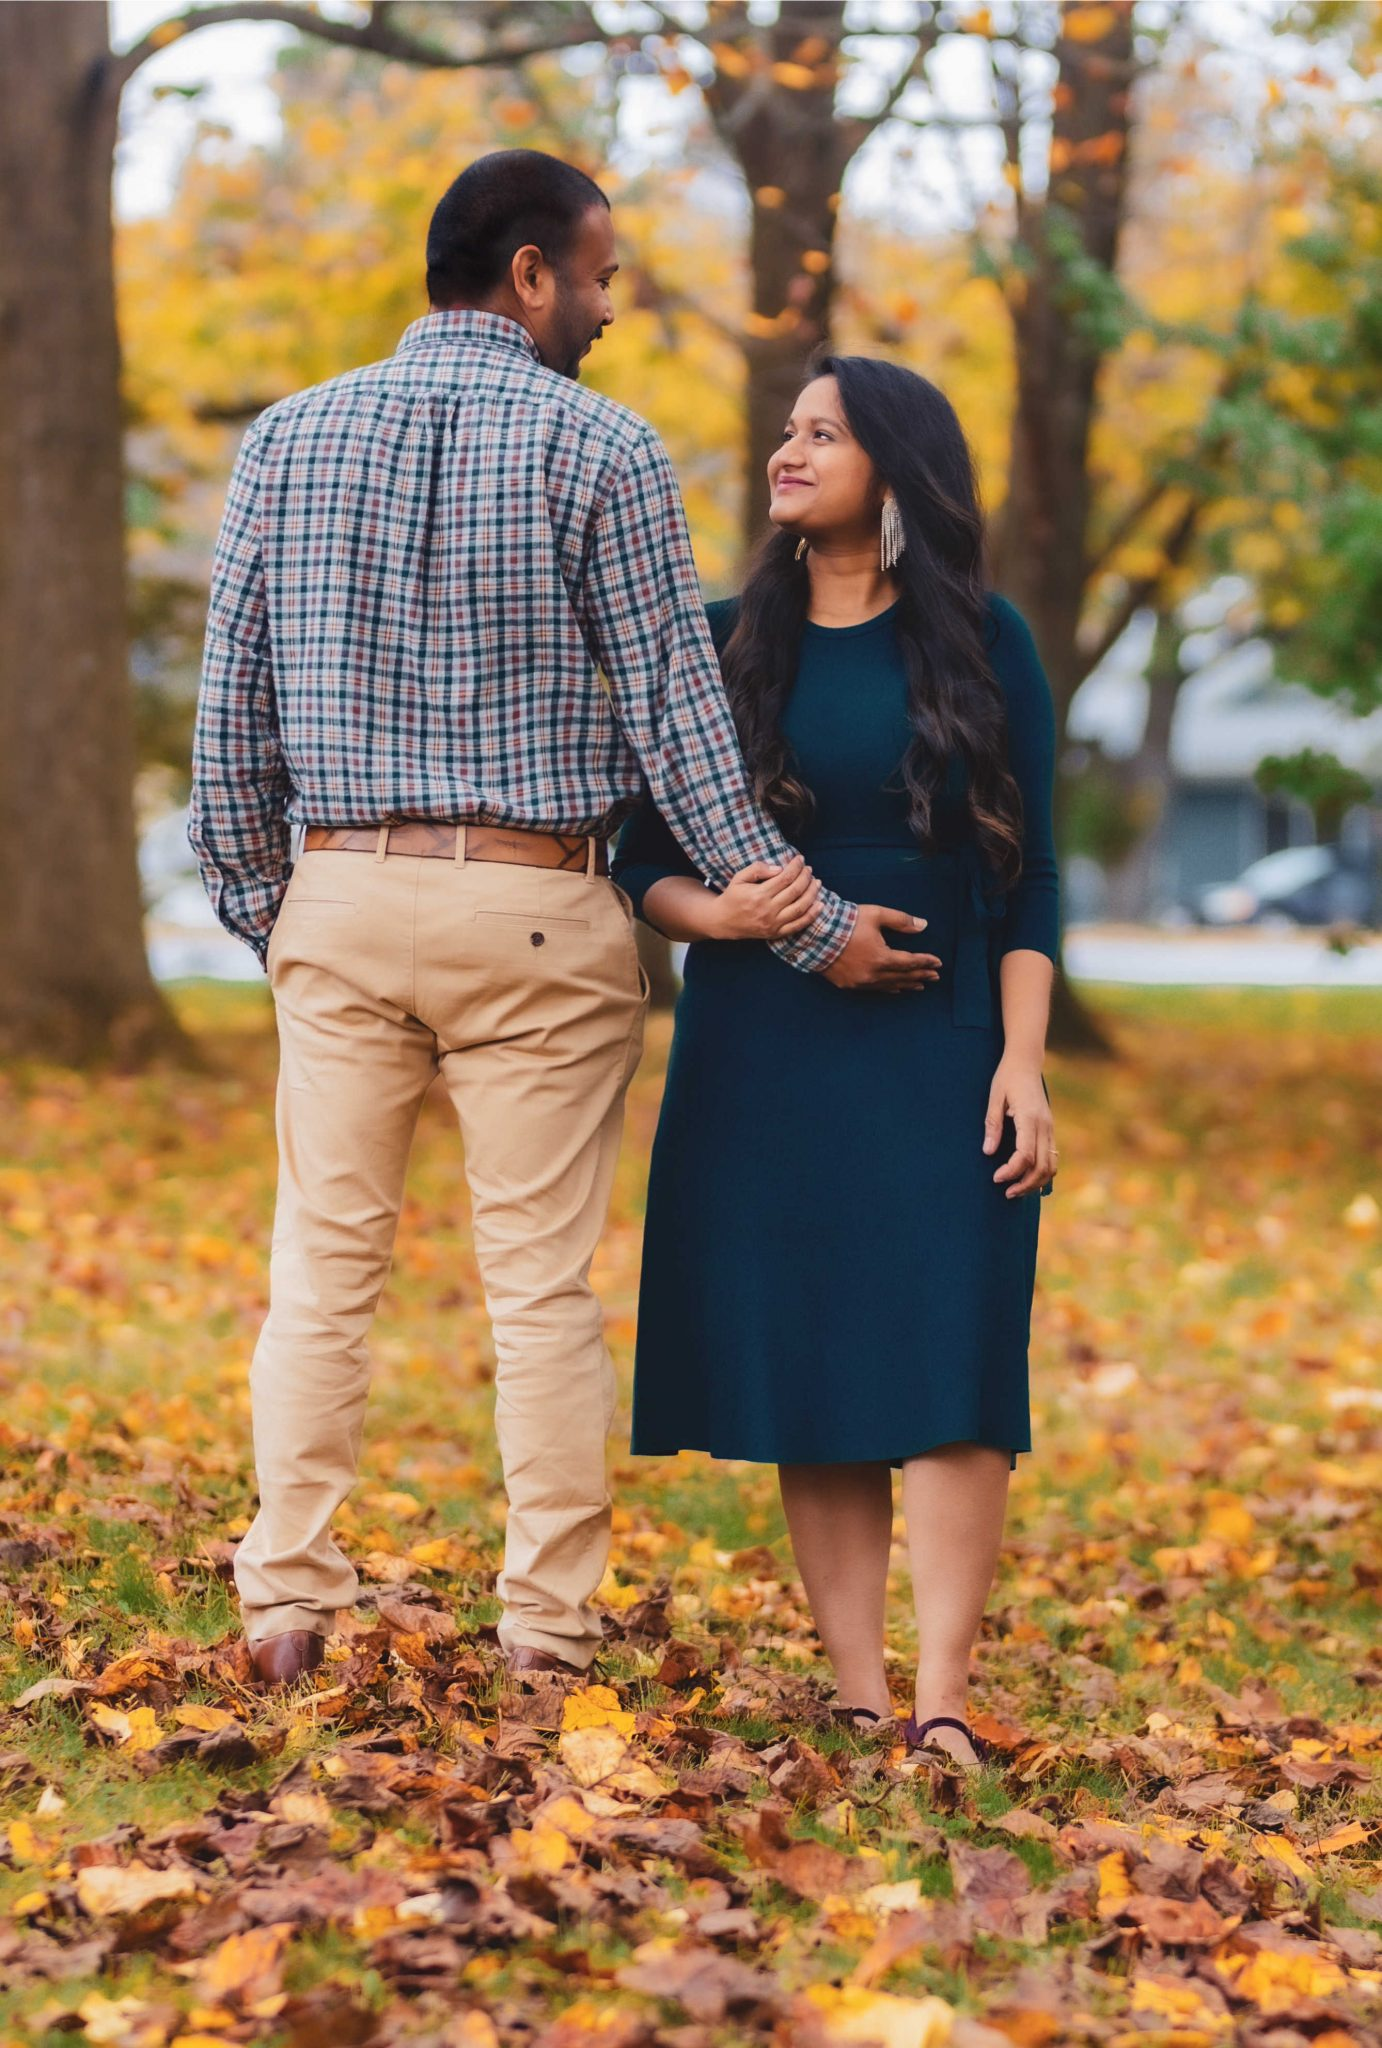 Fall Pregnancy Announcement by top Maryland life and style blogger, Dreaming Loud | Pregnancy Announcement by popular Maryland lifestyle blog, Dreaming Loud: image of a man wearing a blue and red plaid shirt and khaki pants and a pregnant woman wearing a blue maternity dress, statement earrings, and purple velvet shoes standing together outside under trees with yellow leaves.